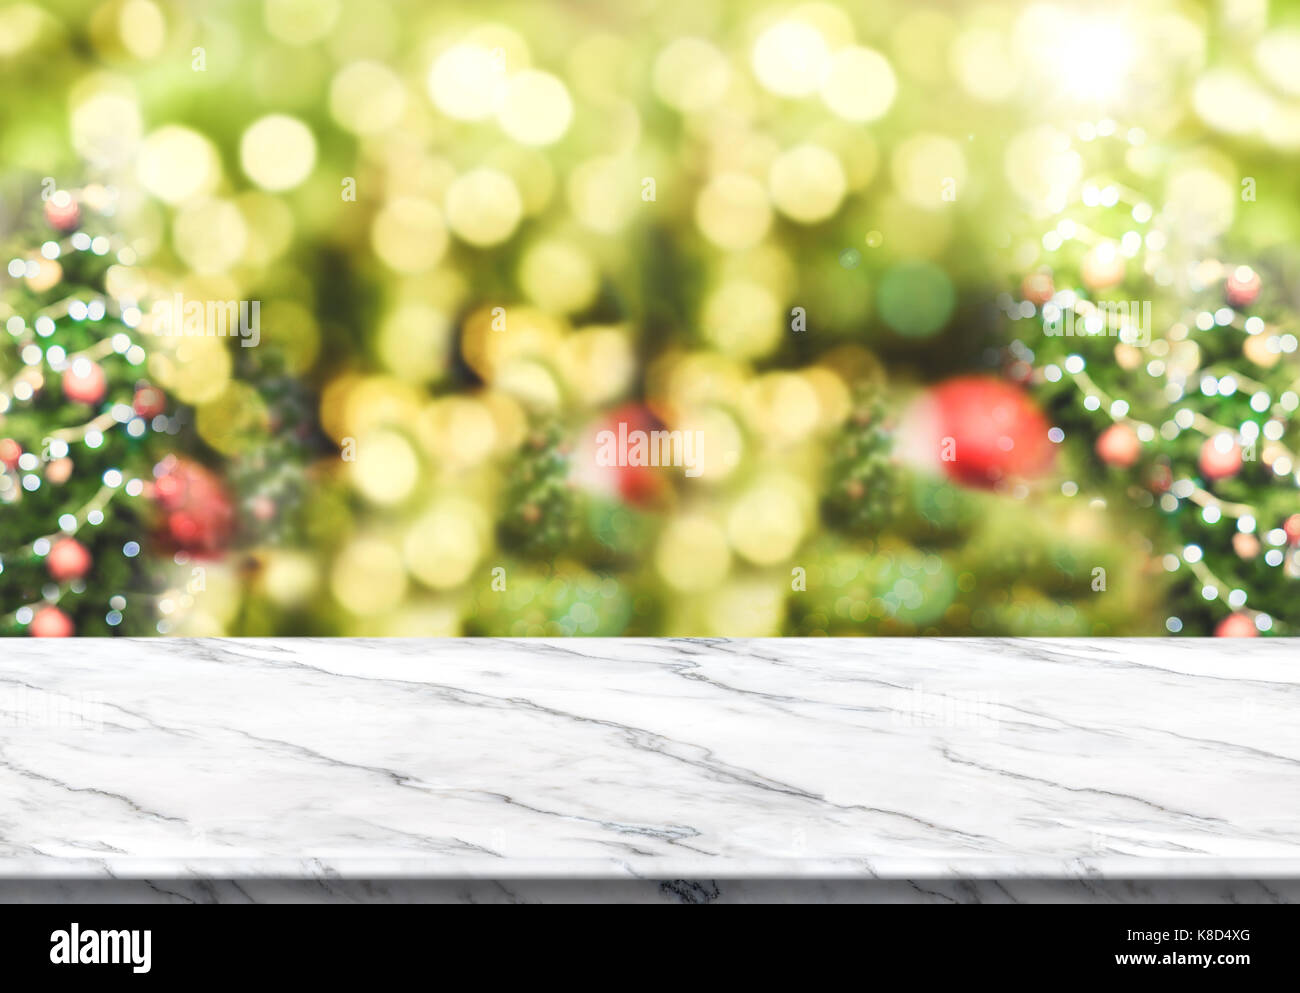 White Marble Table Top With Abstract Blur Christmas Tree Background With  Bokeh Light,Holiday Backdrop